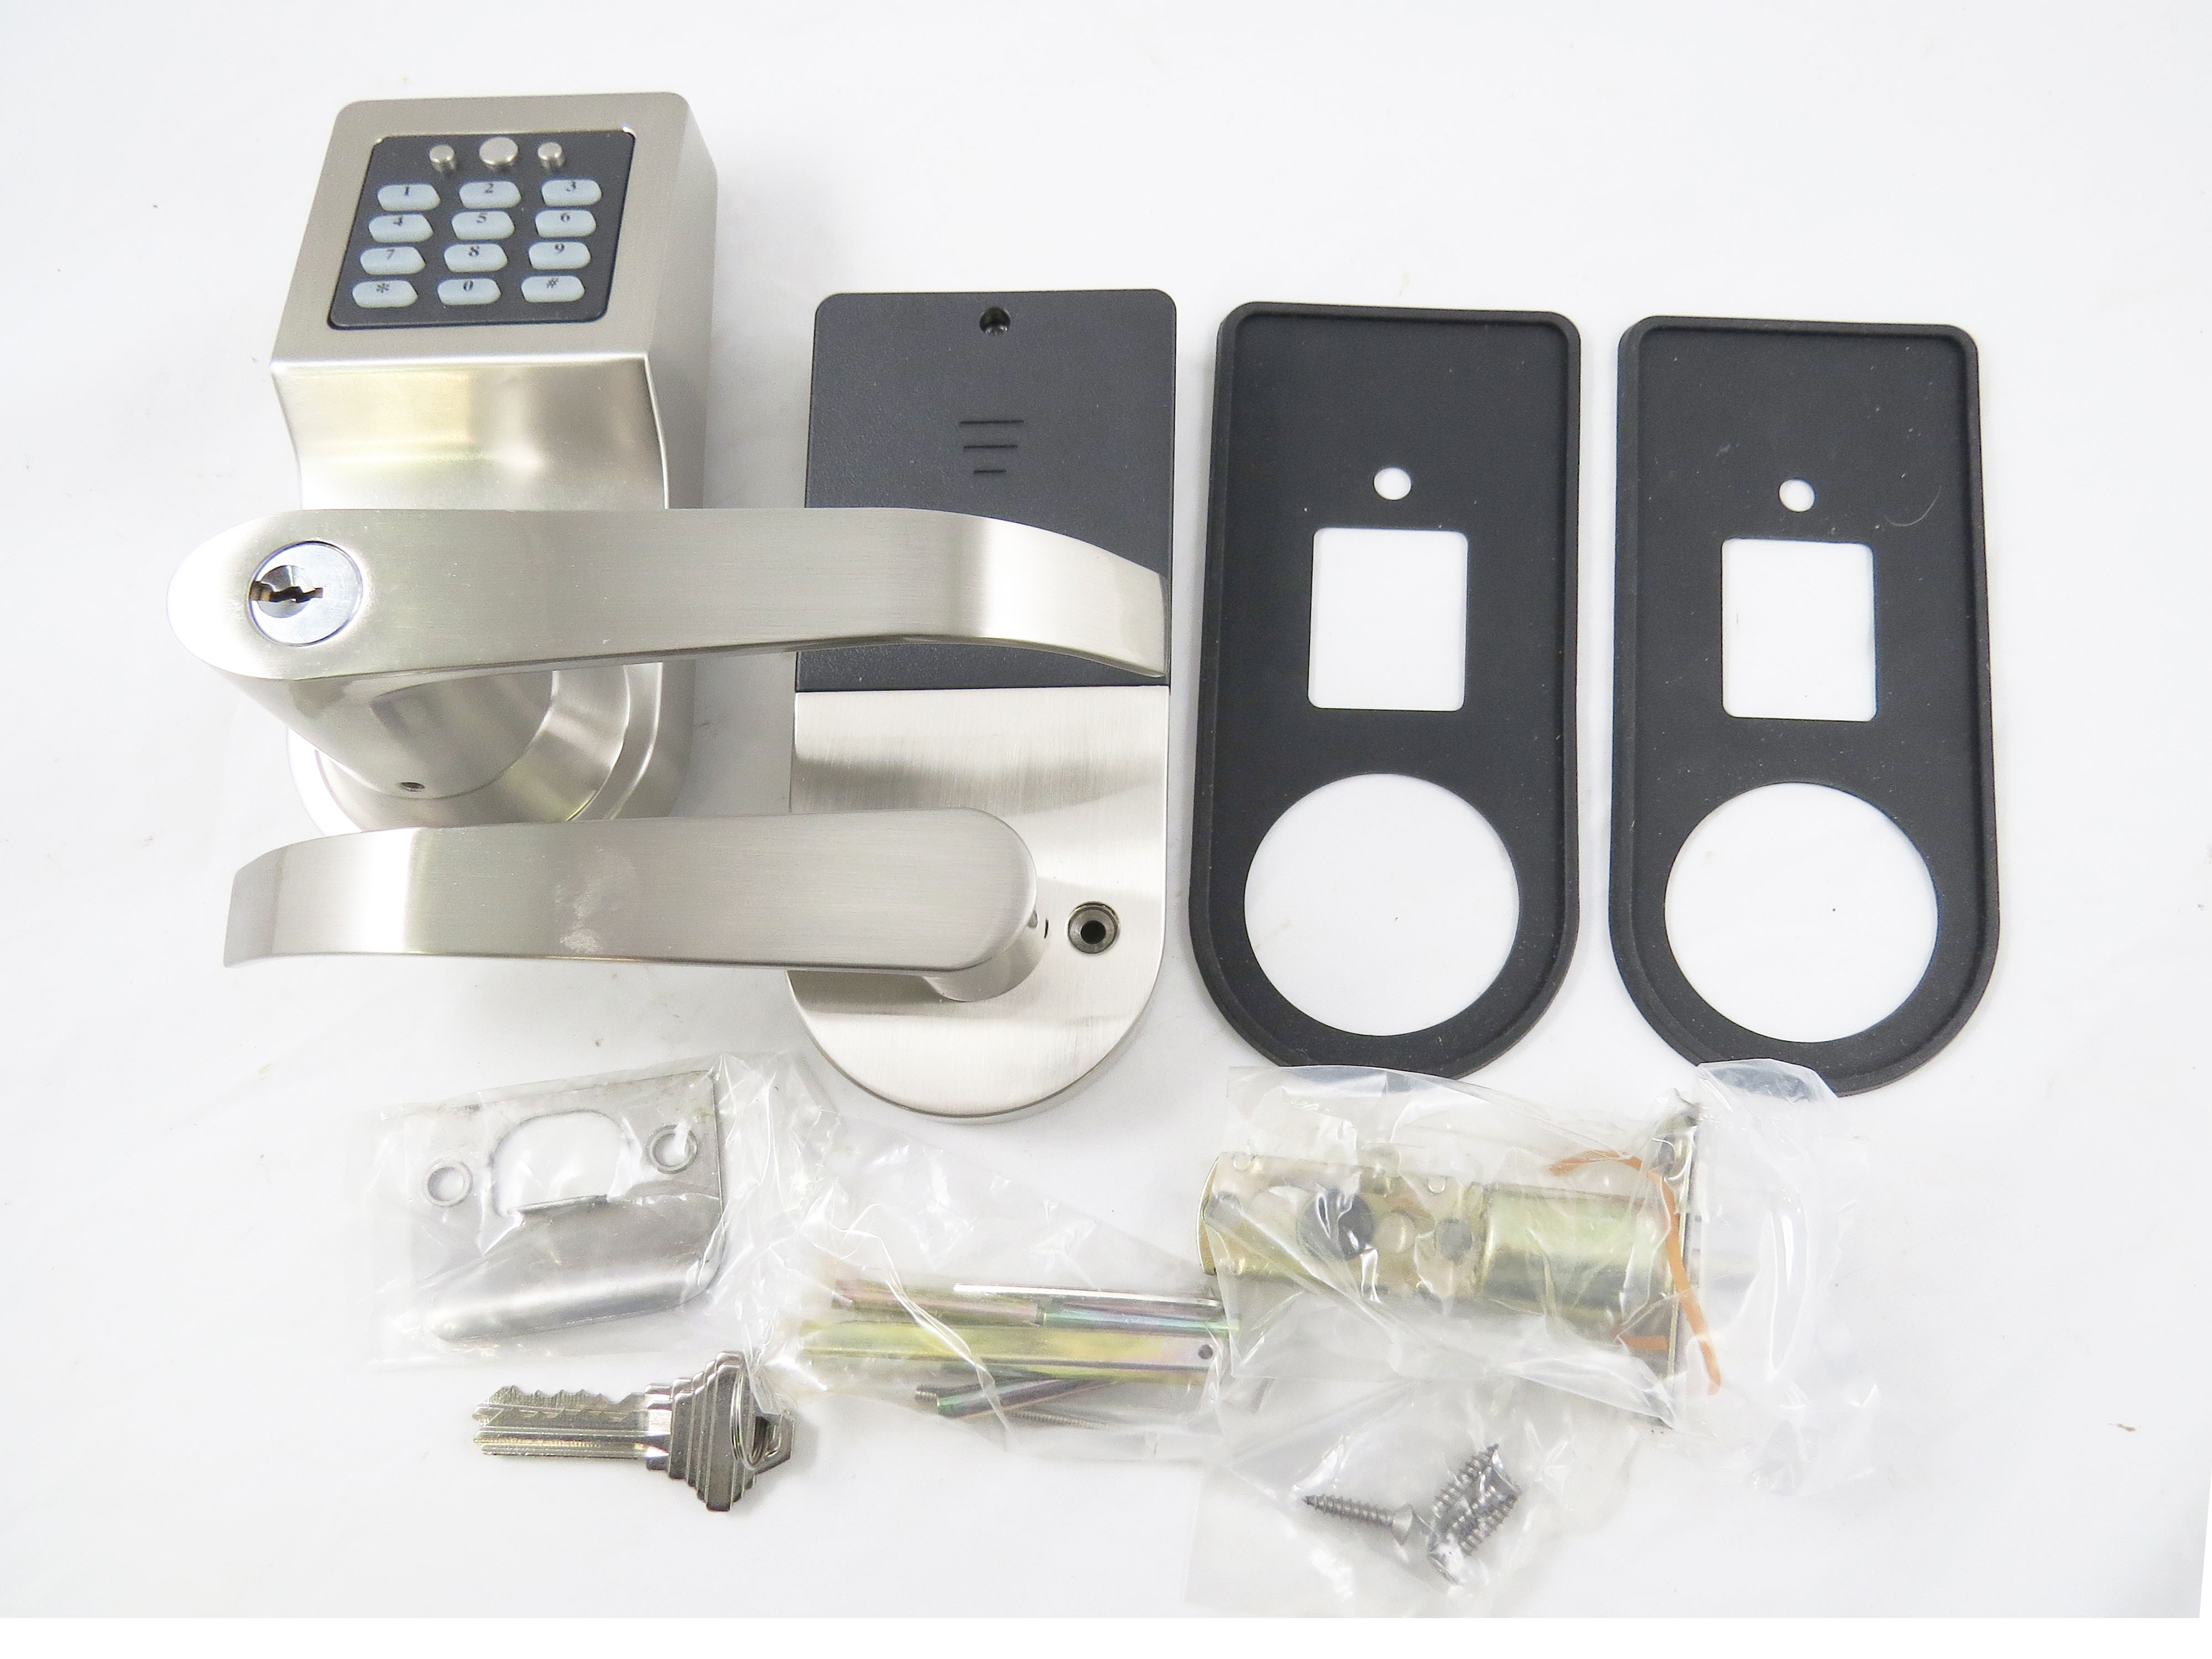 Eternity E6 iButton Keypad Lock with Lighted Keypad